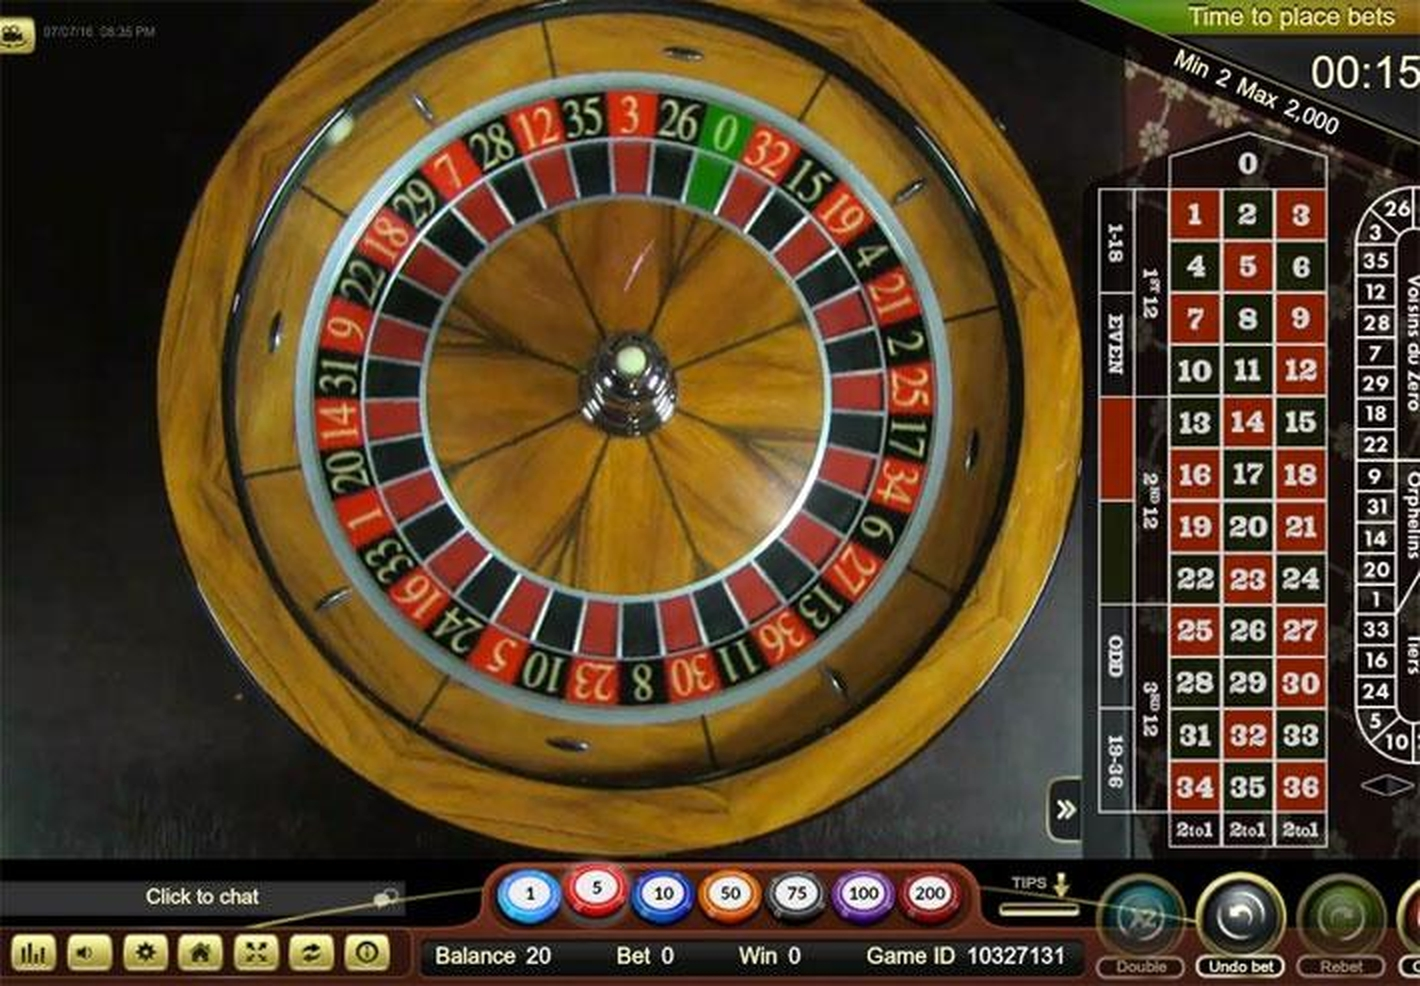 The Live Royal Casino Roulette (Ezugi) Online Slot Demo Game by Ezugi